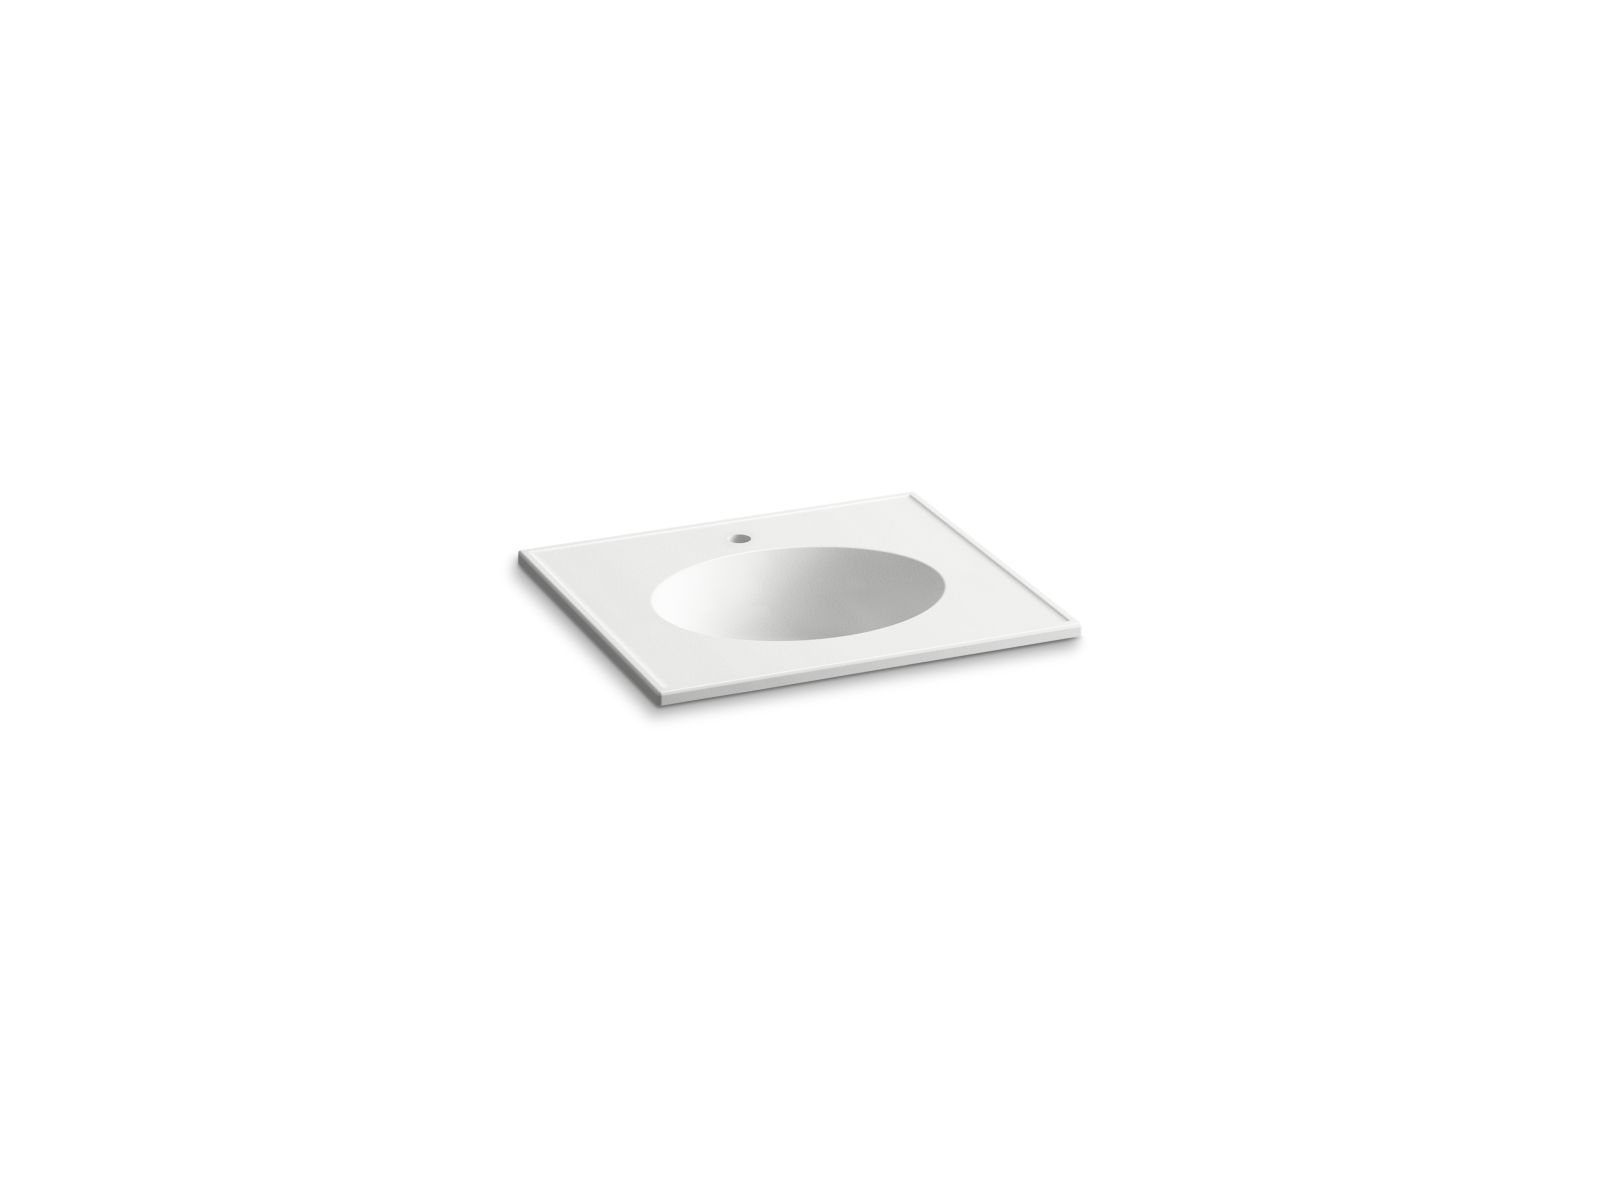 "Kohler Ceramic/Impressions™ K-2791-1-G81 25"" oval vanity-top bathroom sink with single faucet hole White Impressions"